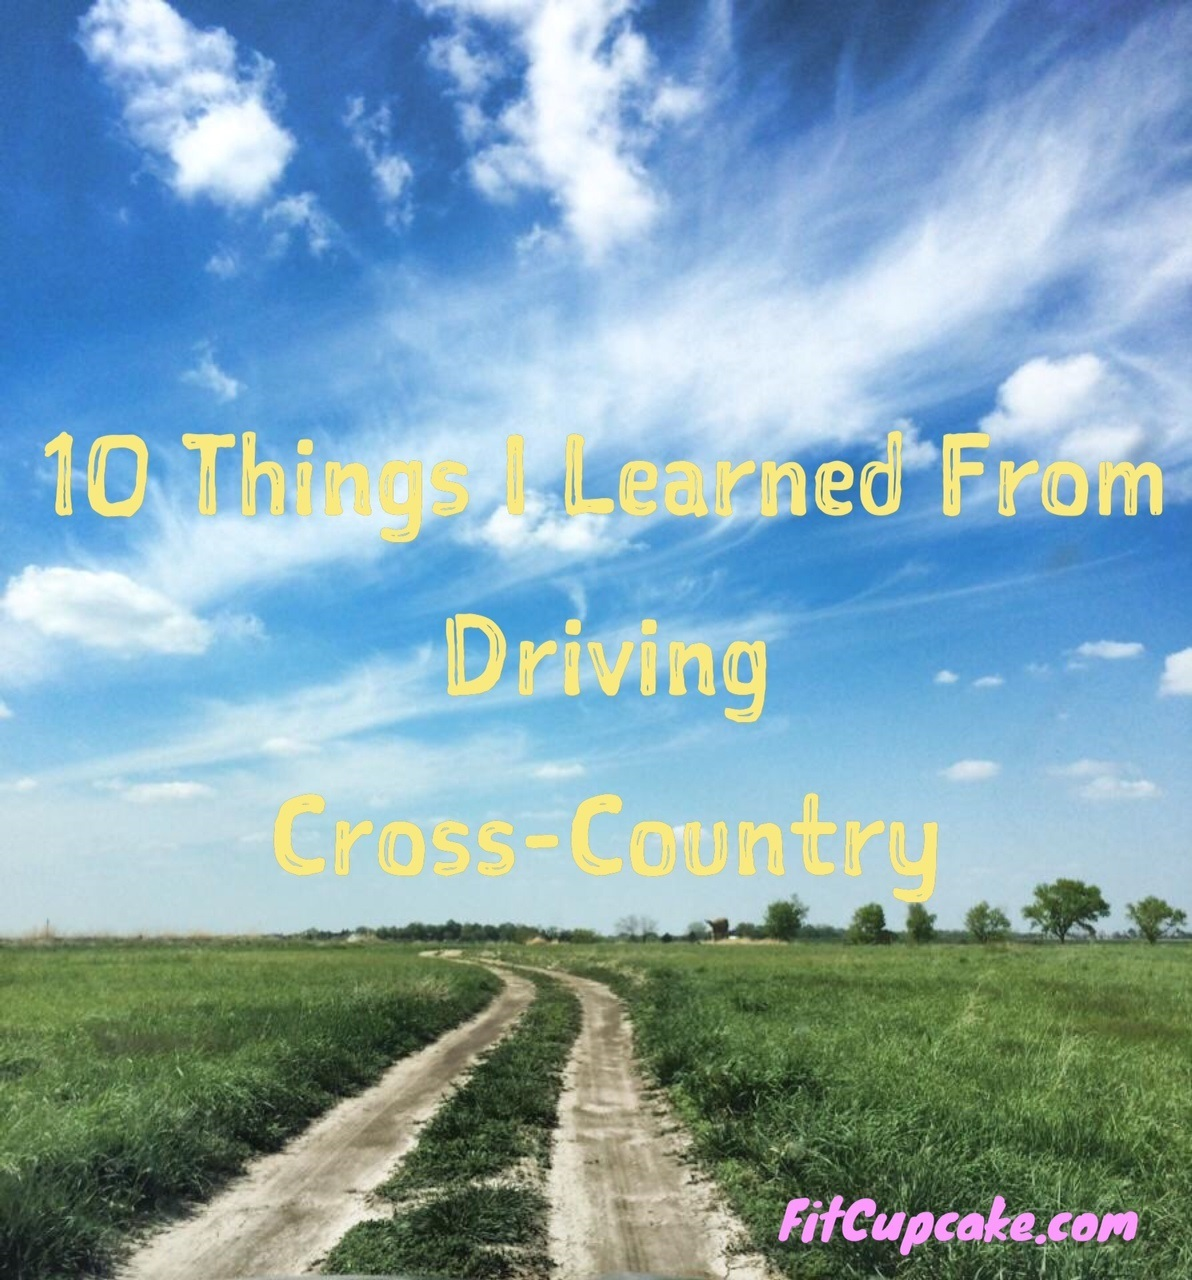 10 Things I Learned From Driving Cross-Country